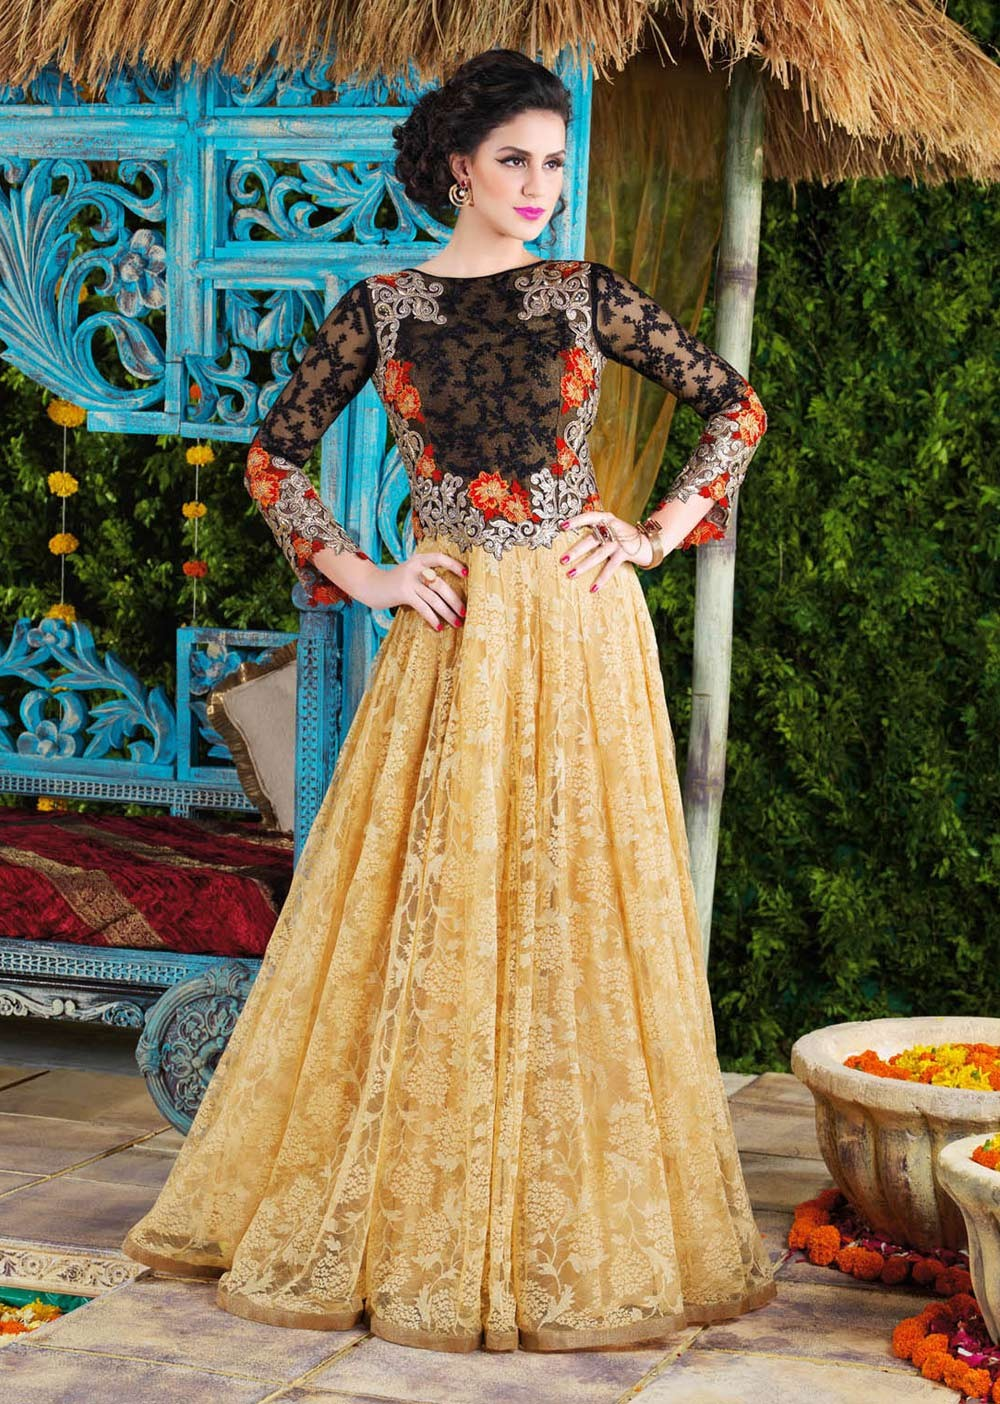 indian wedding dresses and wedding gowns for online get now contemporary wedding dresses Traditional Indian wedding dresses include an elite collection of bridal dresses embroided sarees zari sarees and gem embellished wear that come in